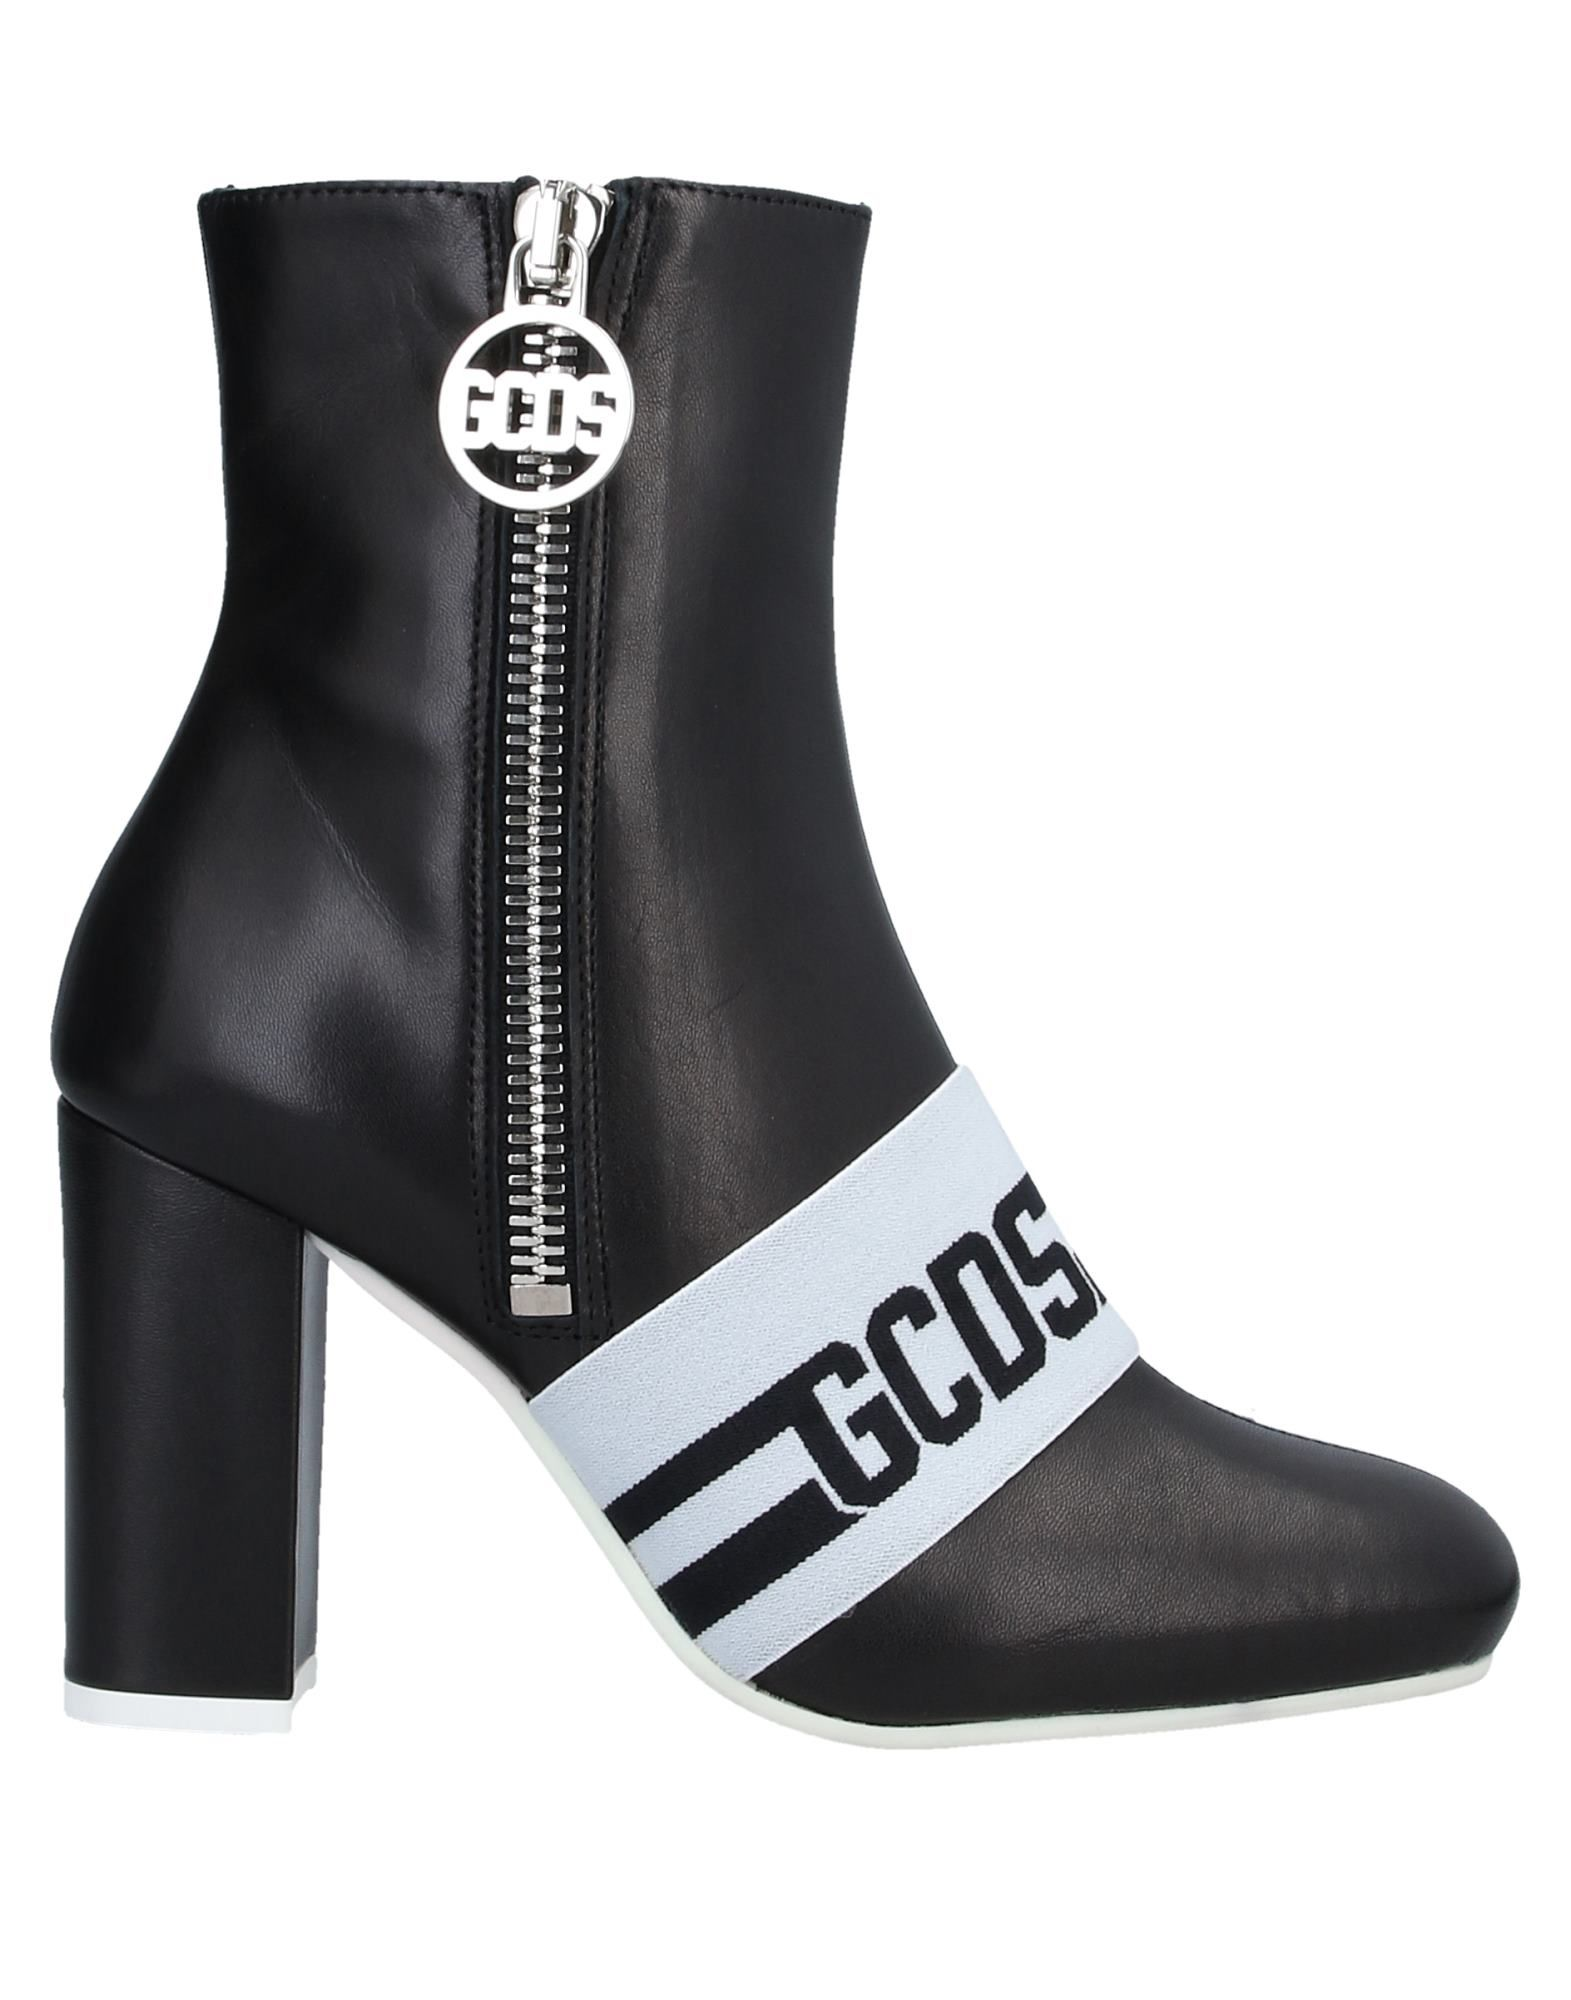 GCDS Ankle boots. logo, two-tone, square toeline, square heel, leather lining, rubber cleated sole, contains non-textile parts of animal origin. Soft Leather